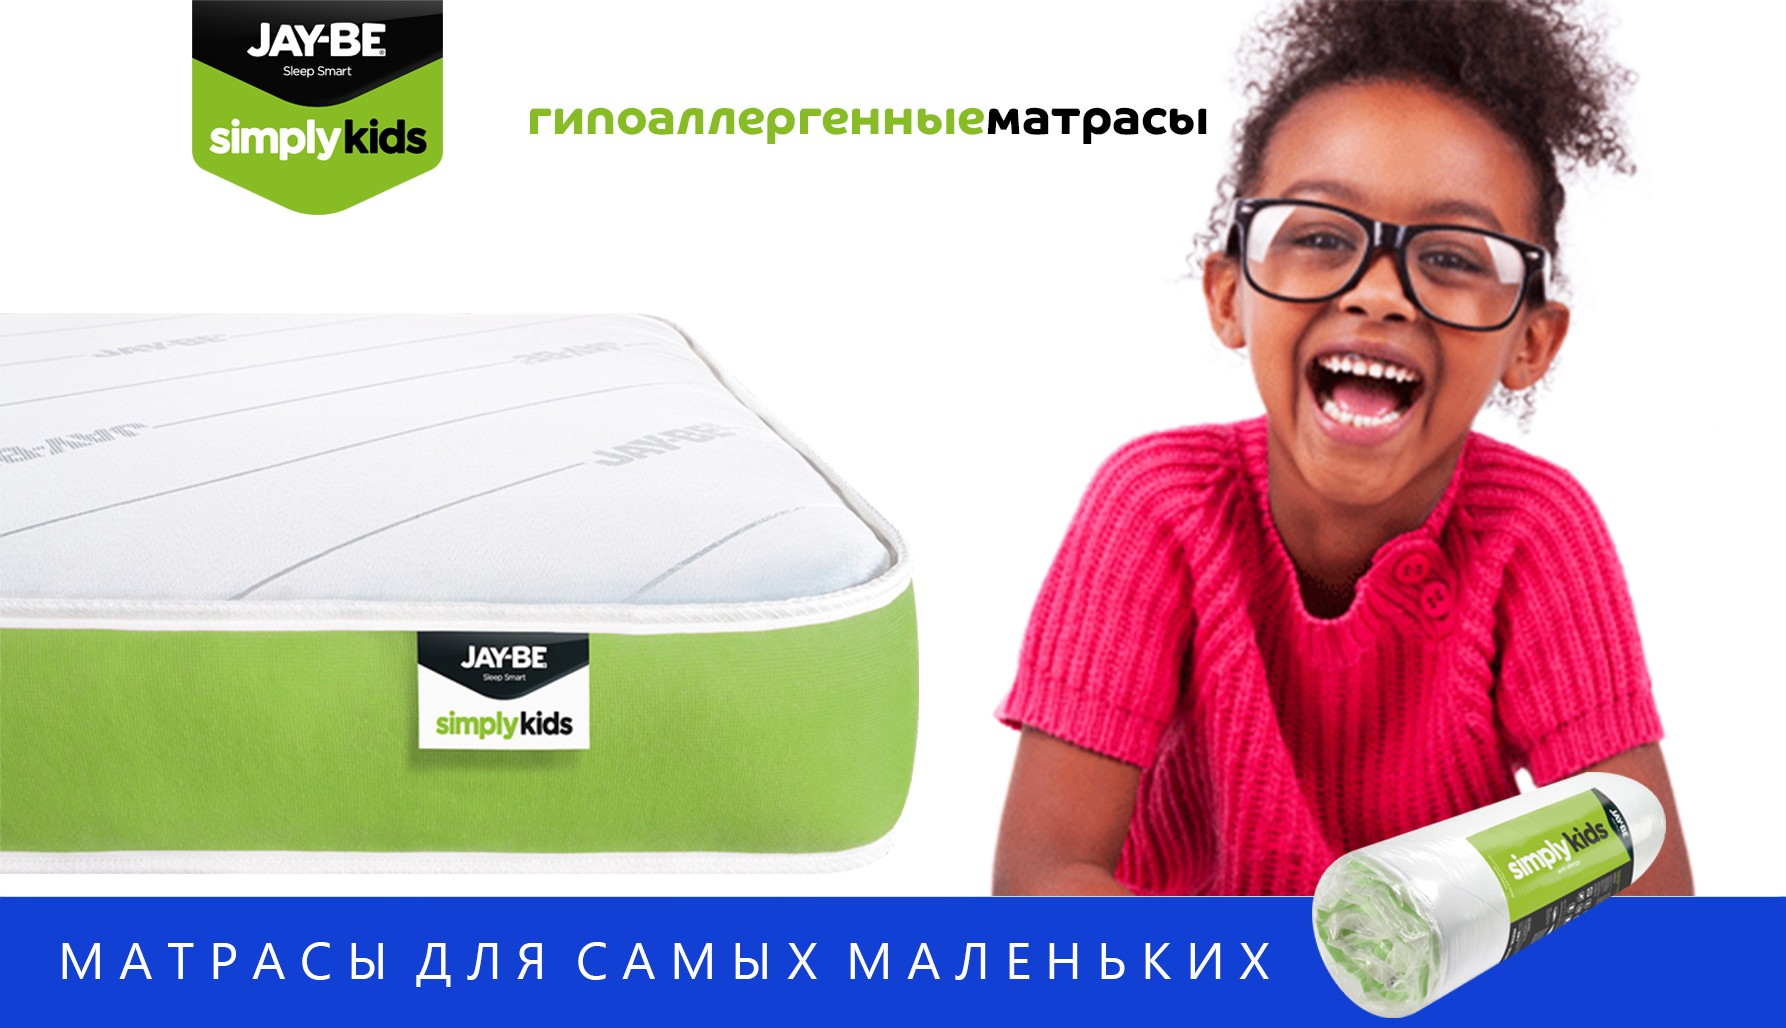 Английские матрасы JAY-BE  Simply Kids для детей